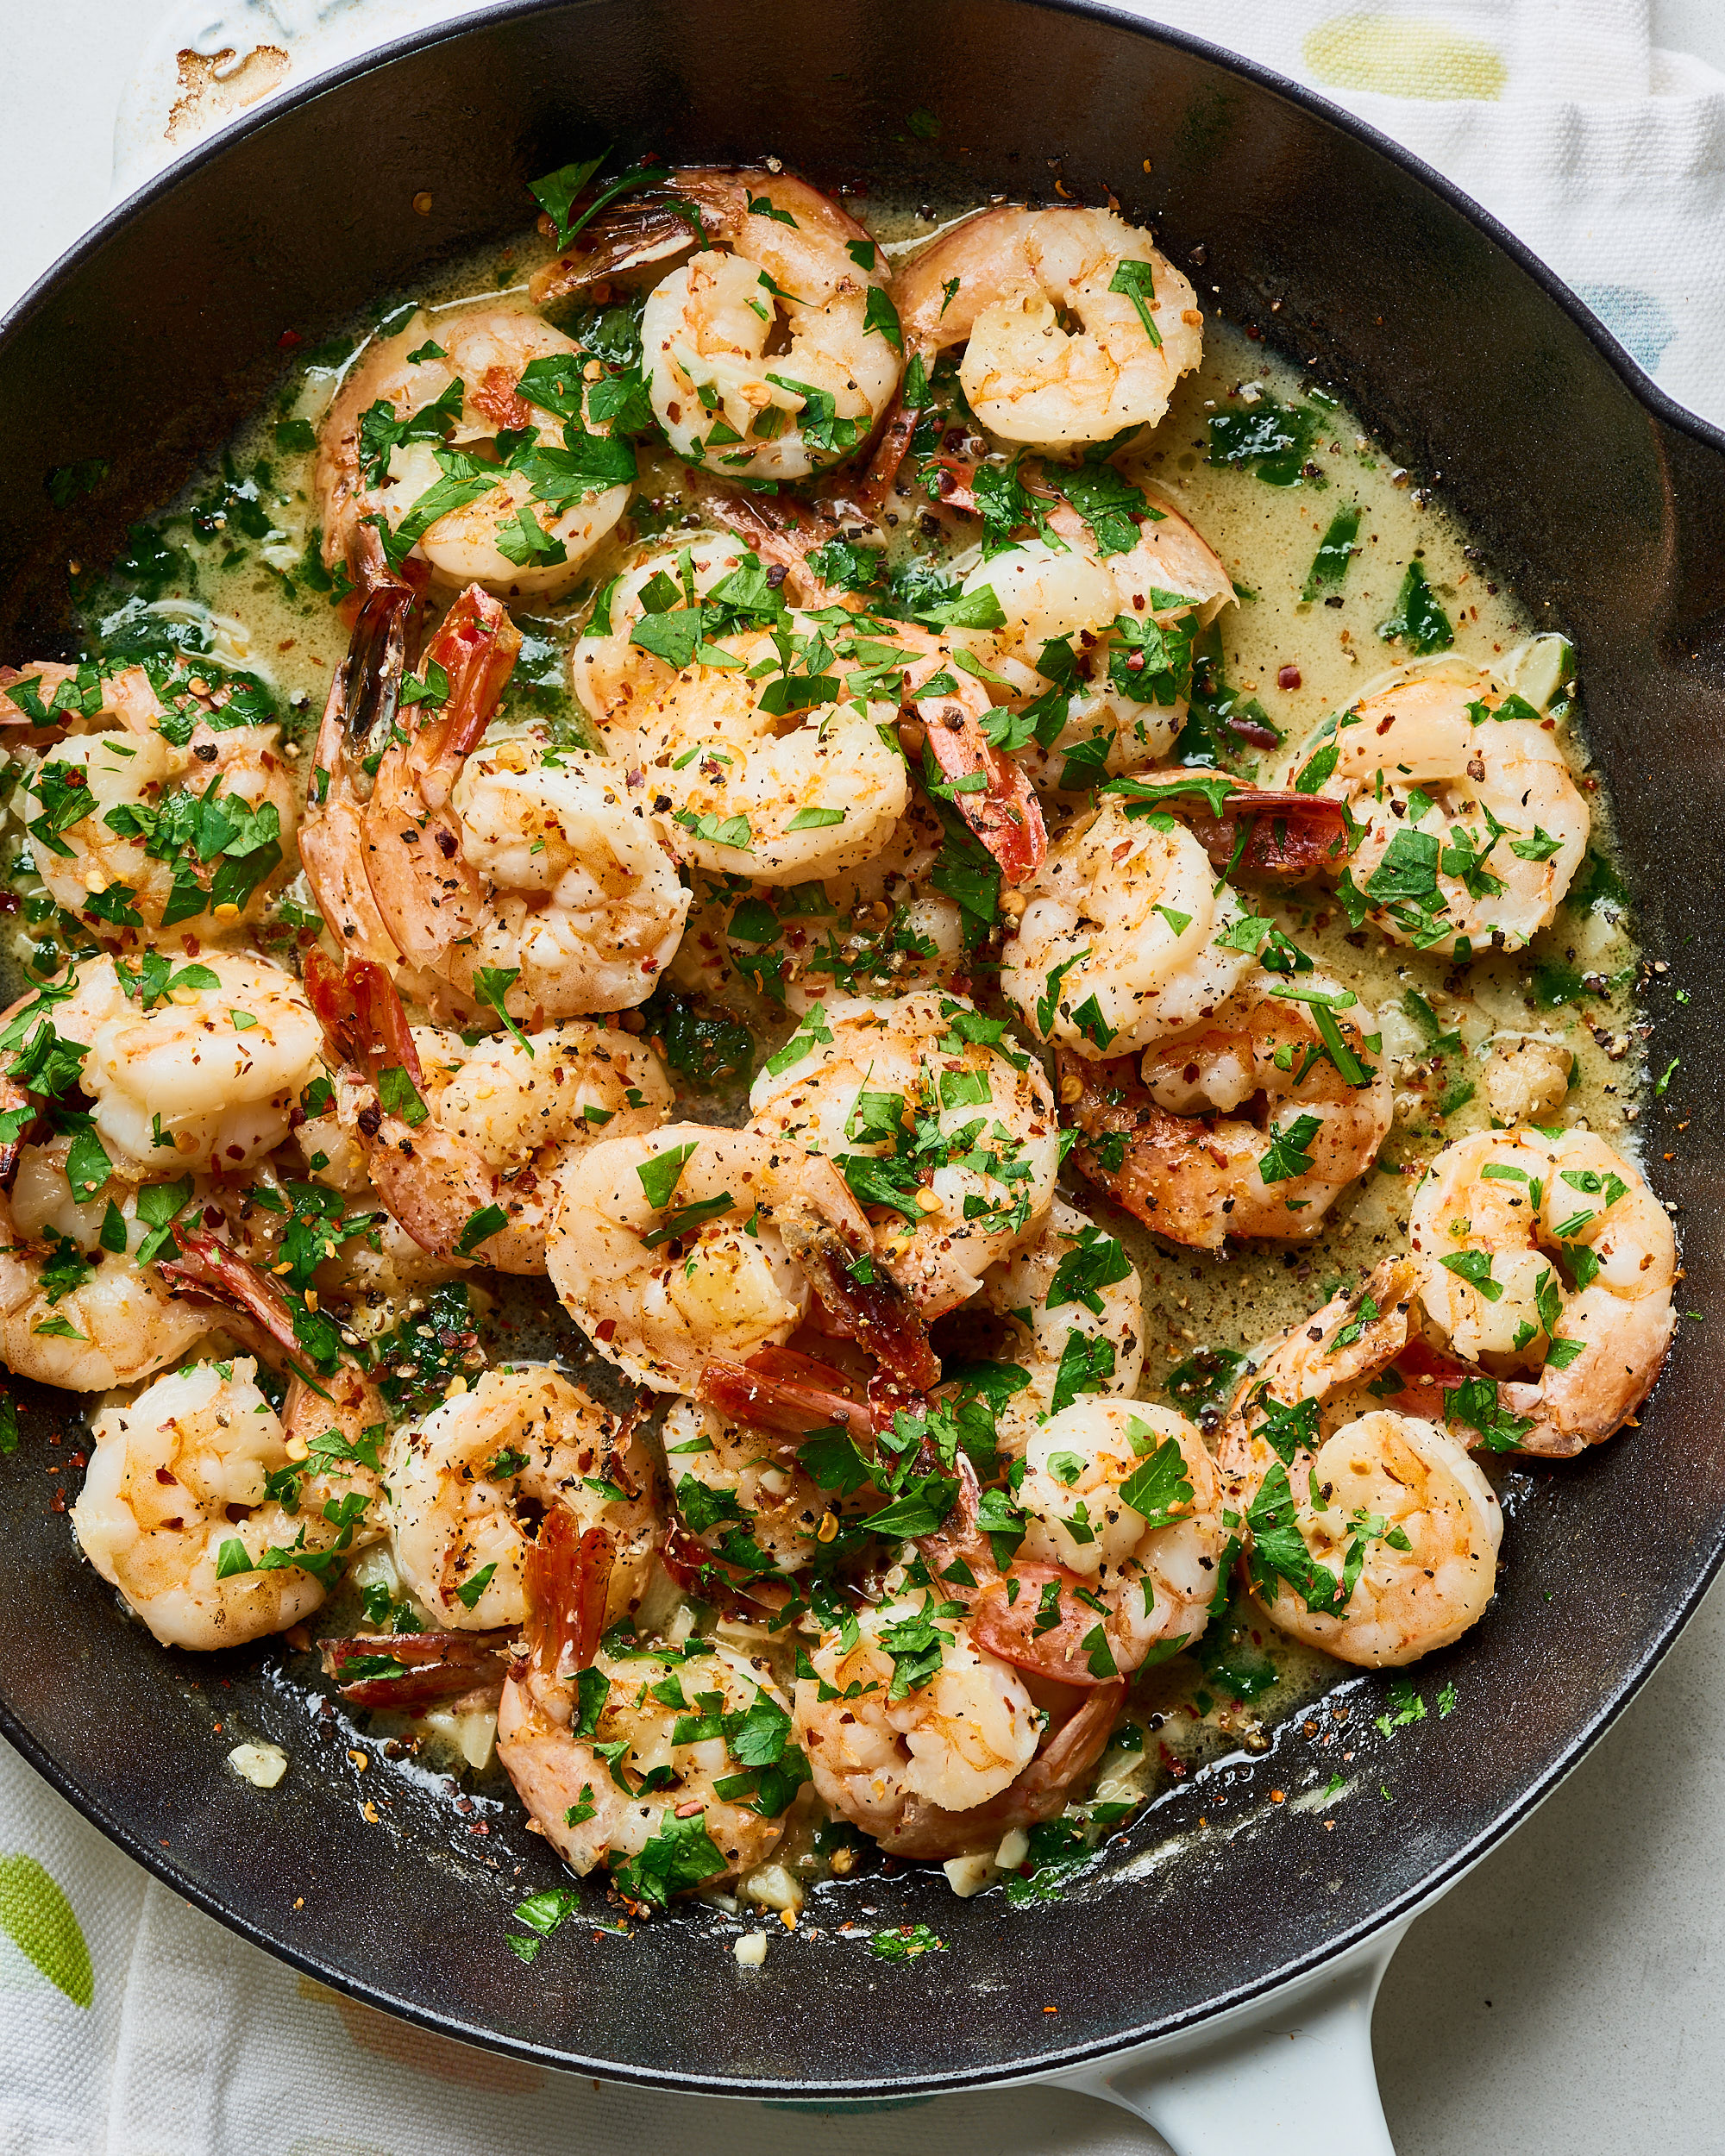 Recipe: Easy 5-Minute Garlic Butter Shrimp